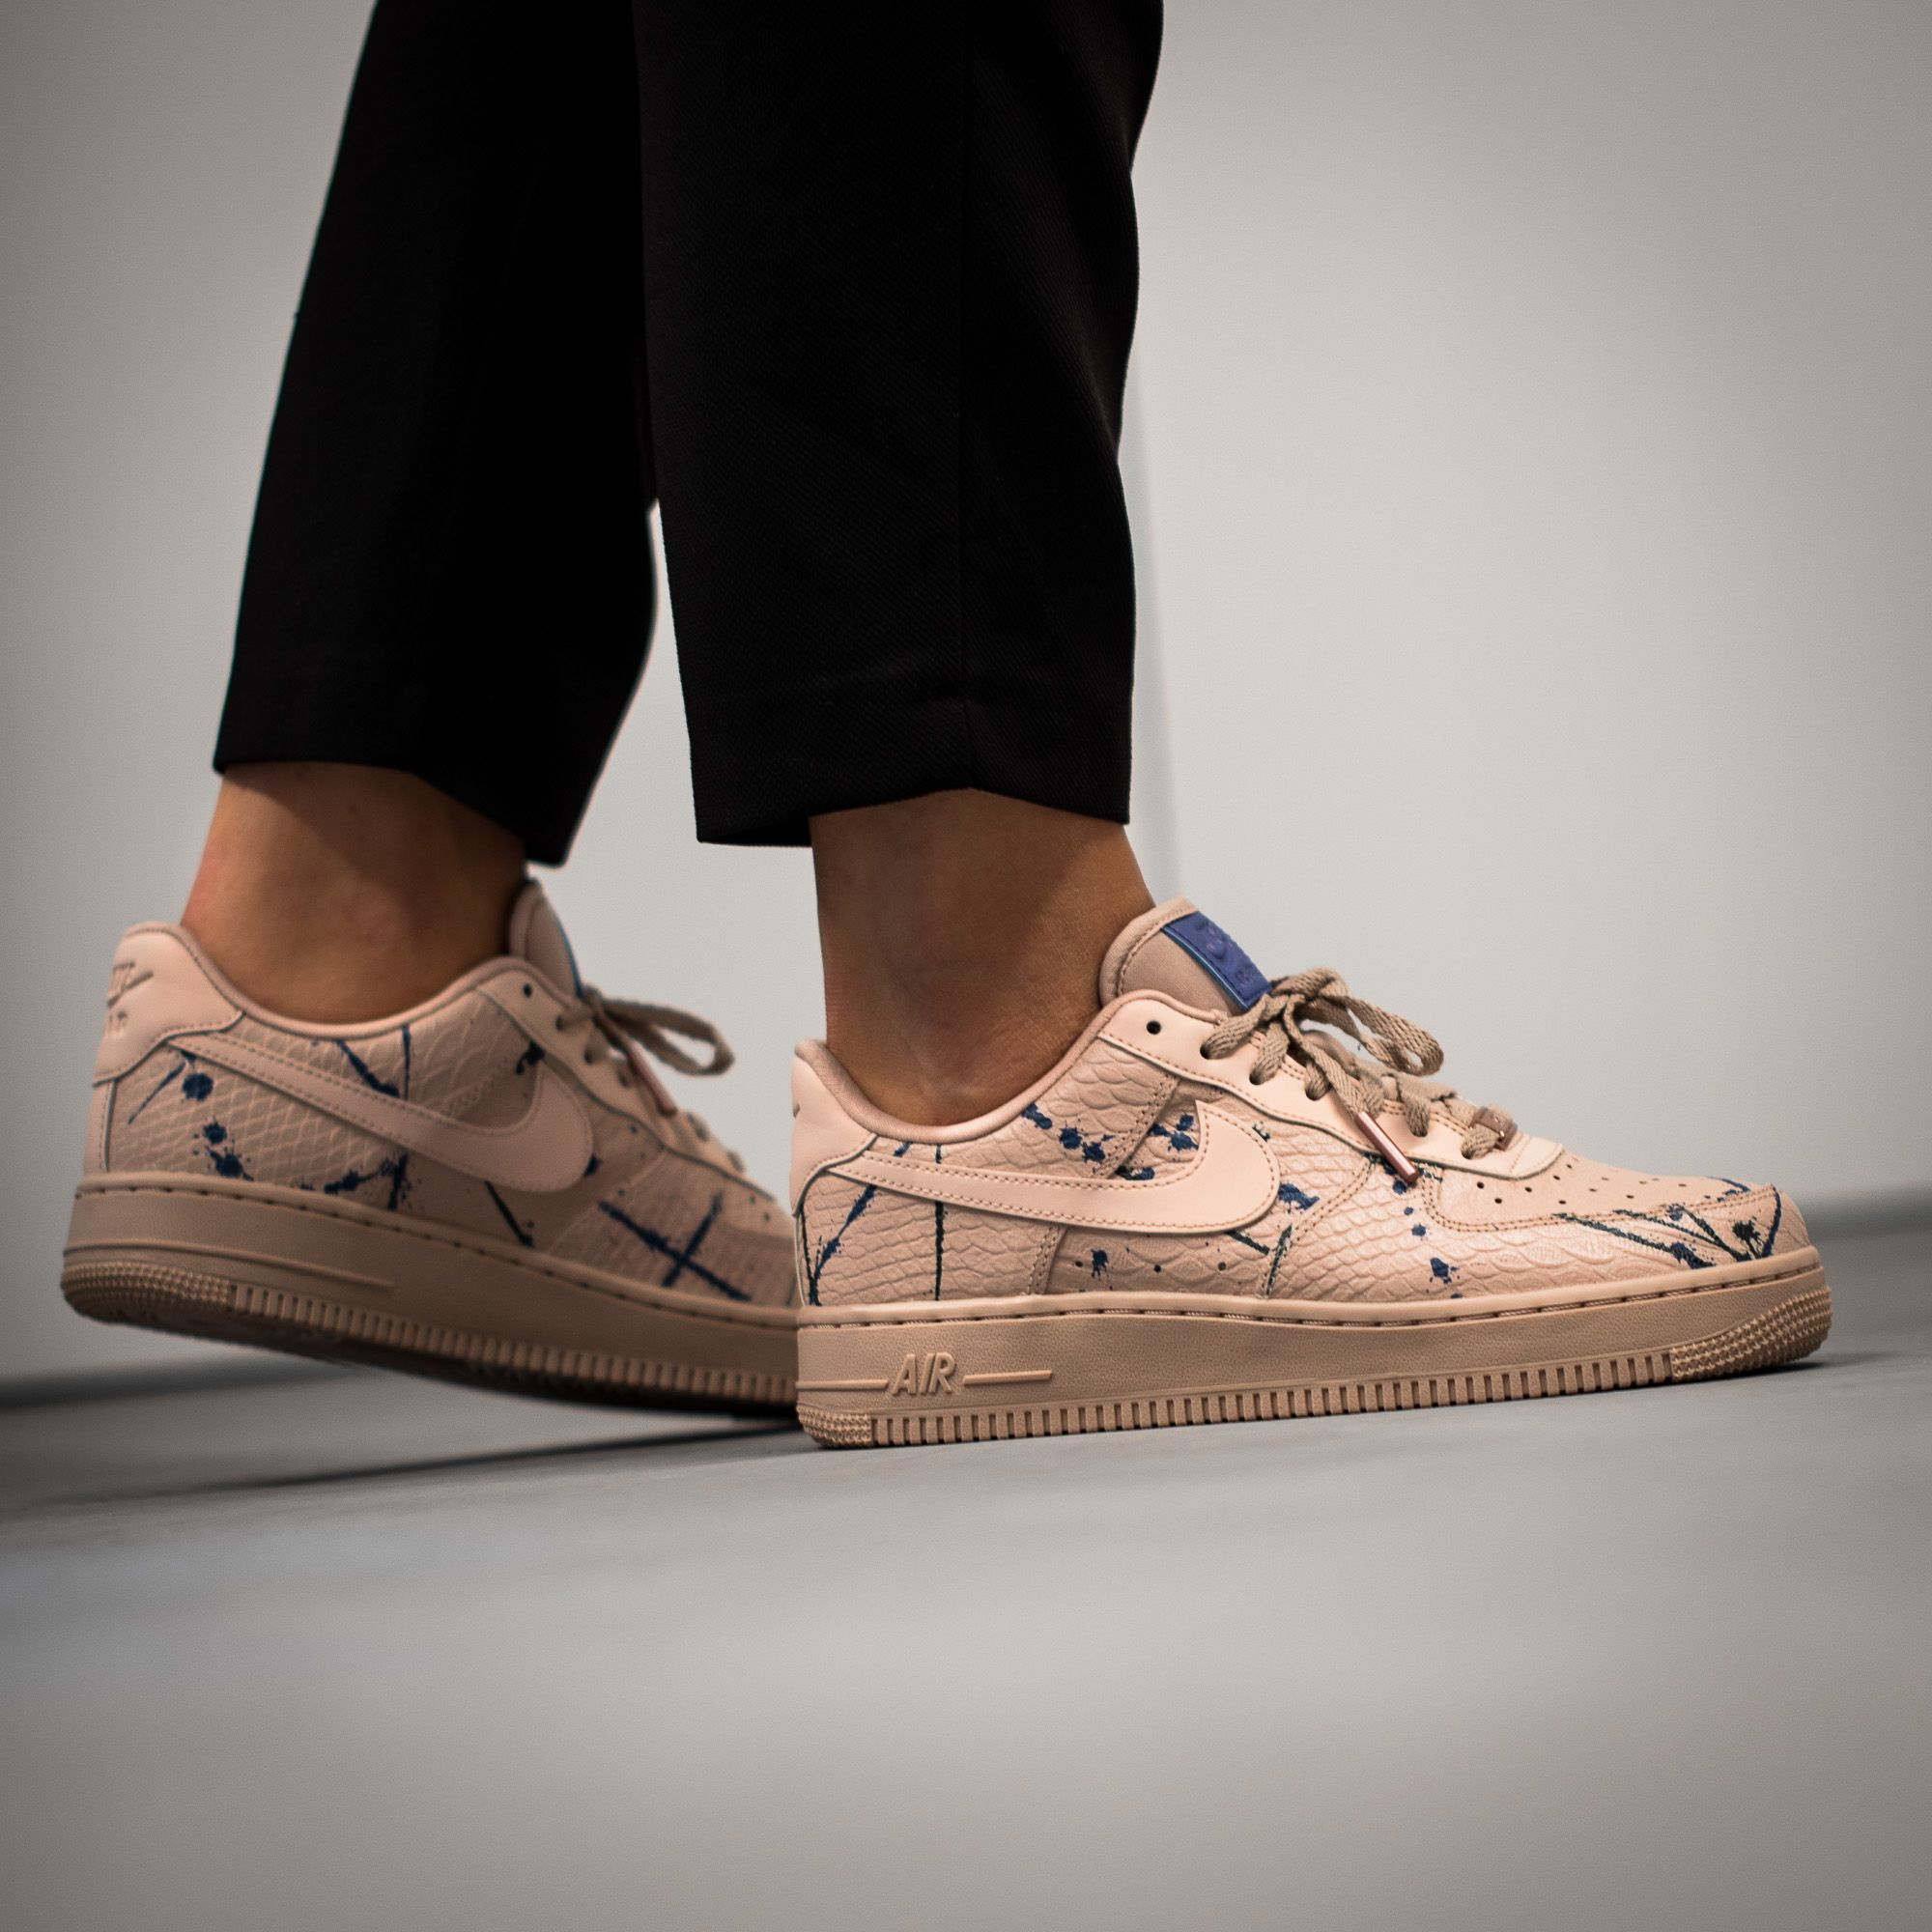 770de8586476 This Nike WMNS Air Force 1  07 LX for Women adds Premium Snakeskin and  Splatter